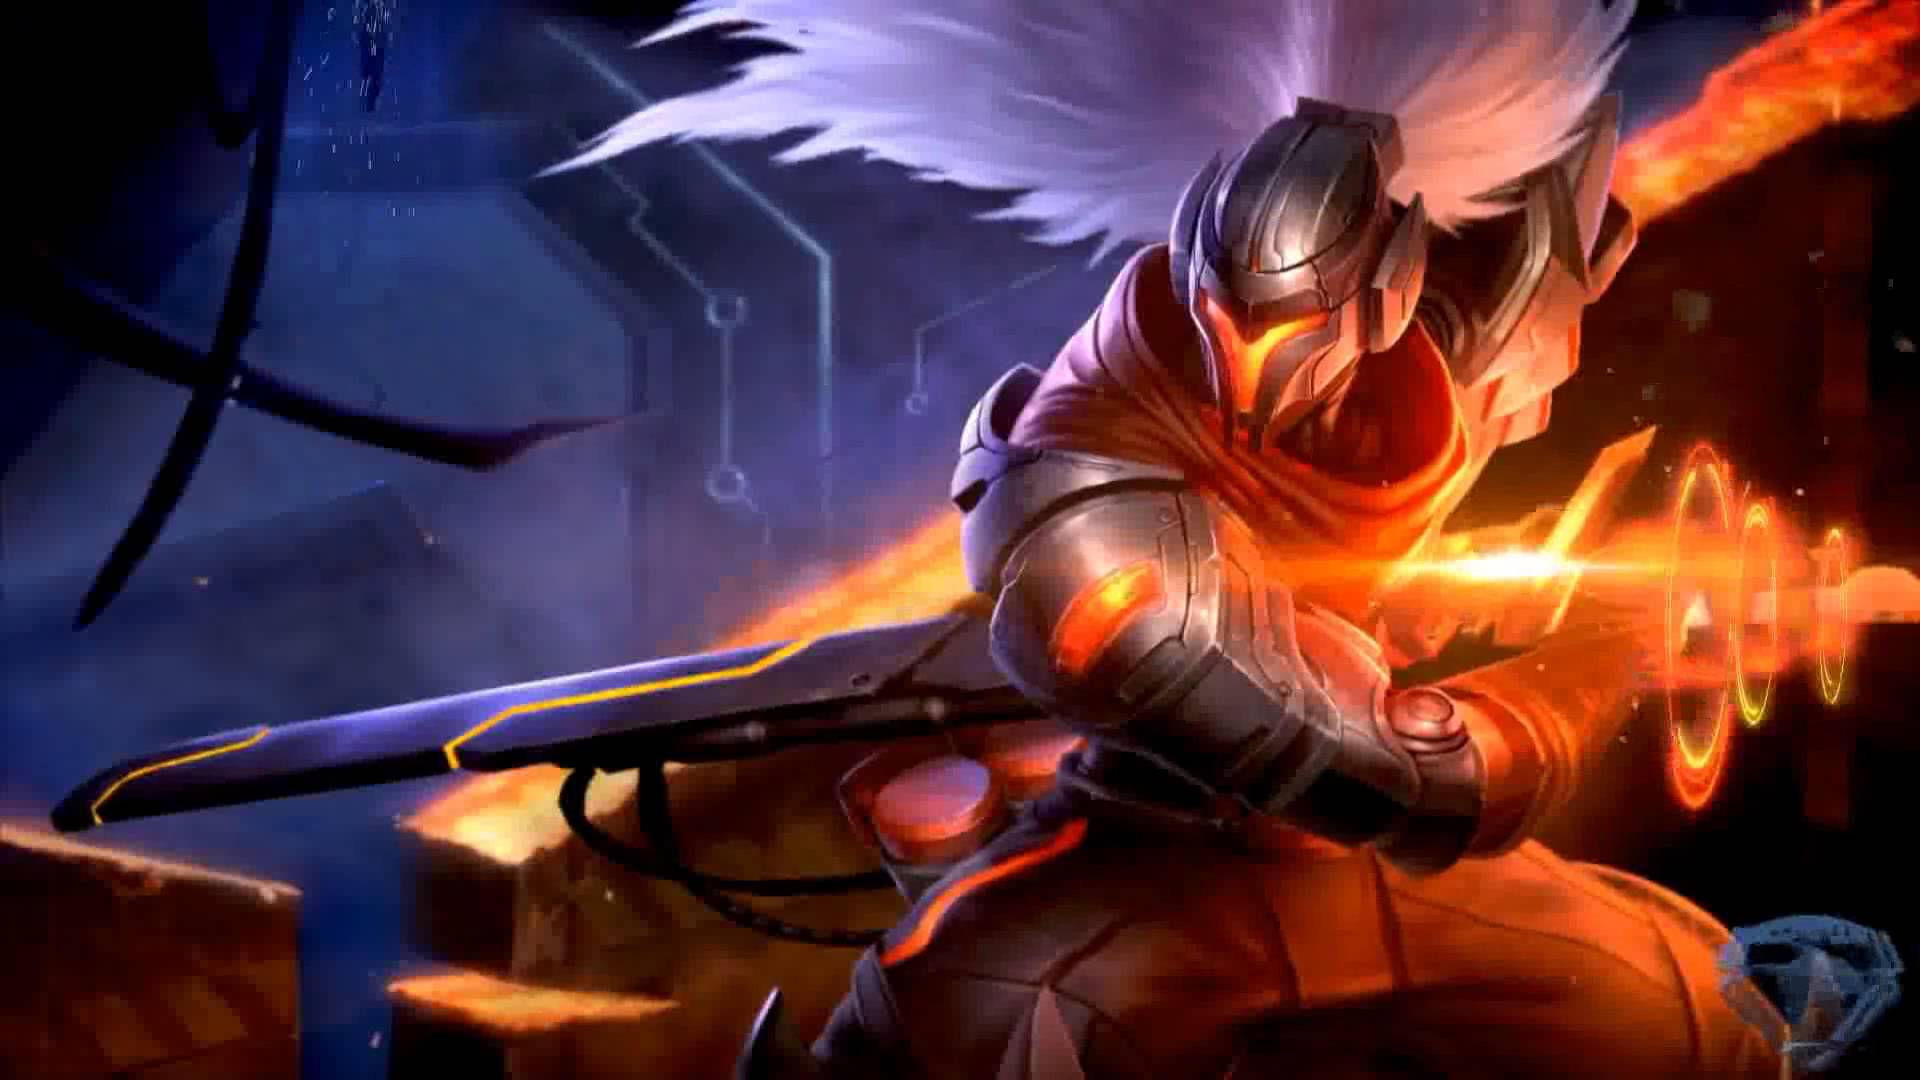 Project Yasuo animated by DeepSpeeD187 Live Wallpaper Dreamscene 1920x1080